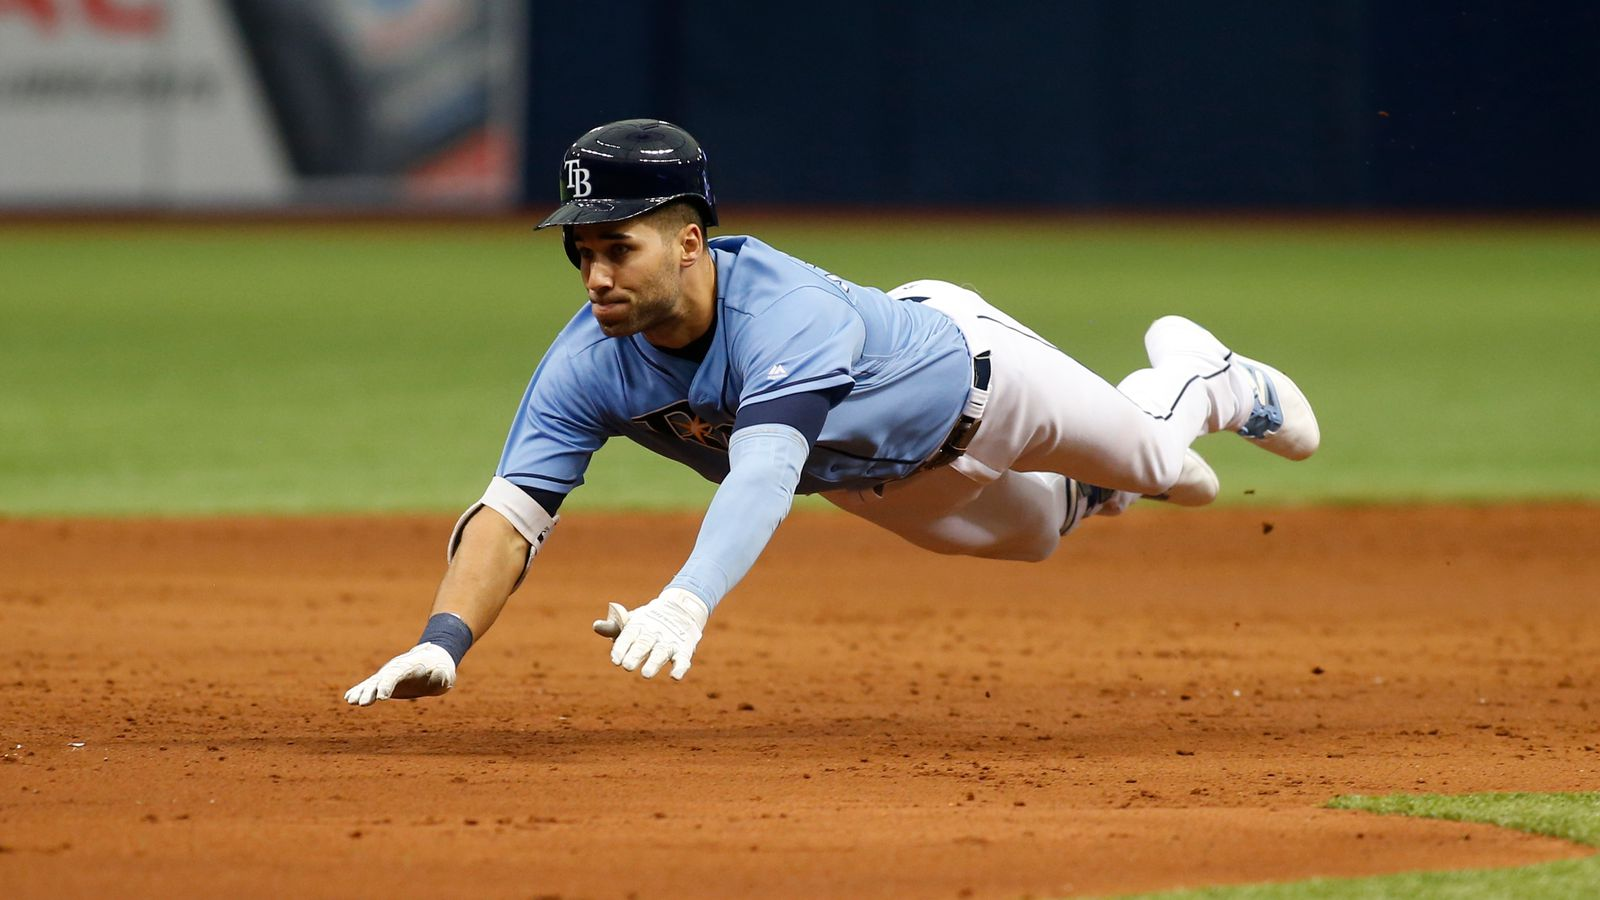 Rays Vs Yankees Preview The Offense Looks To Keep Rolling